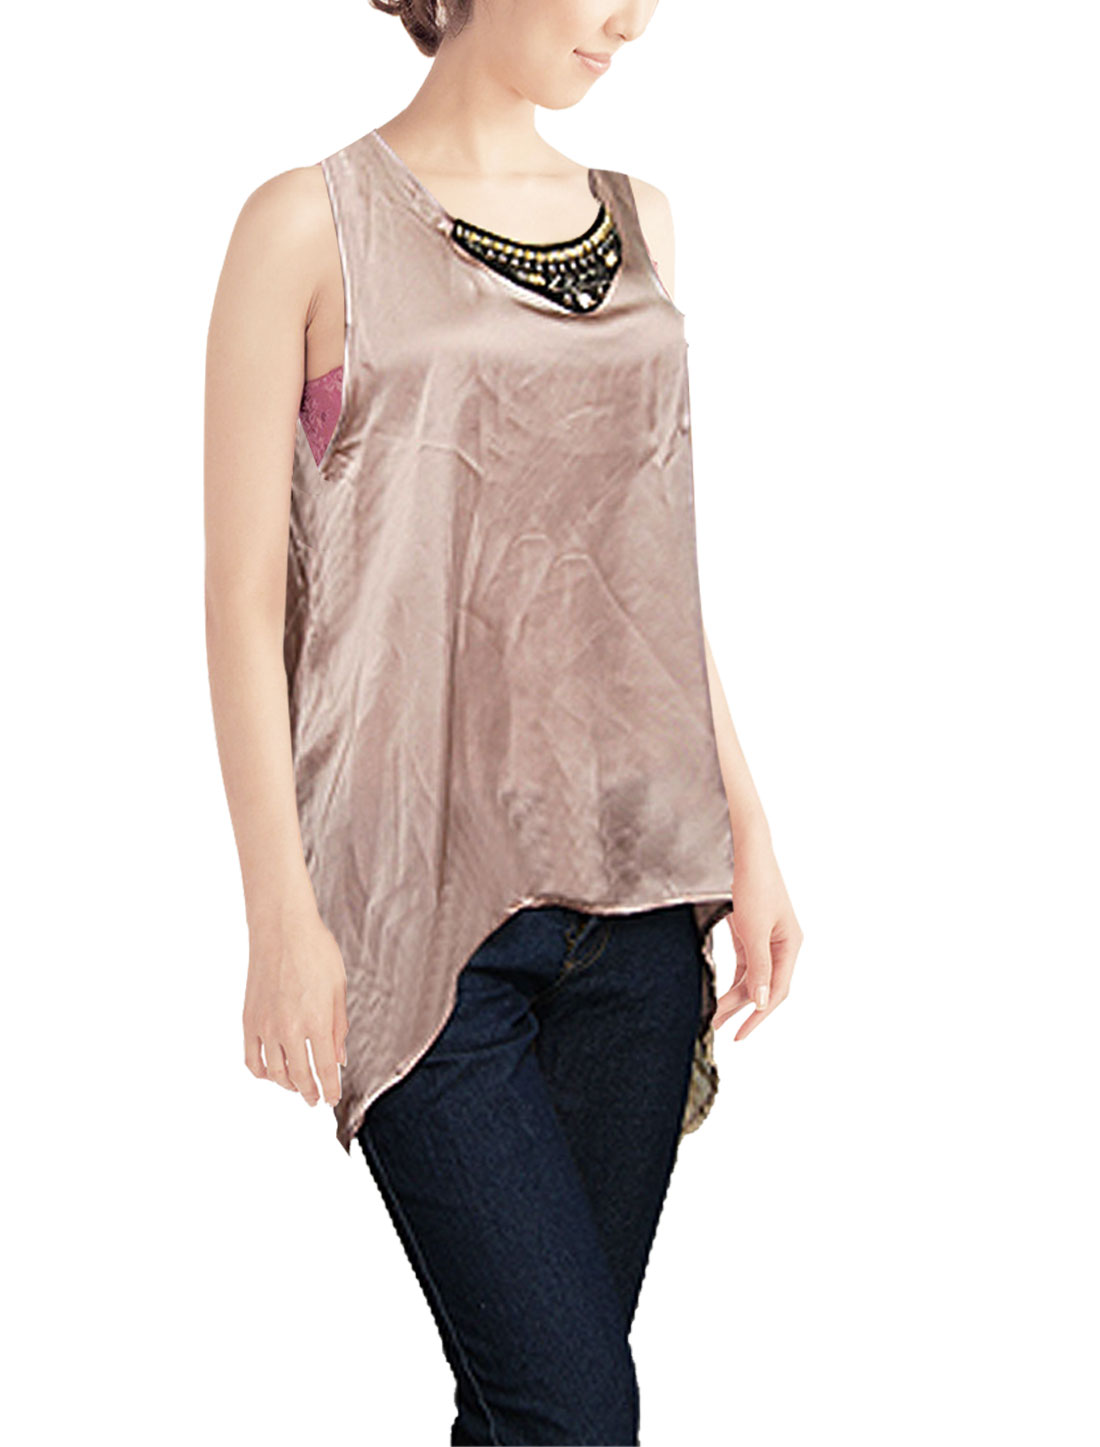 Lady Coffee Color Scoop Neck Sleeveless Chiffon Tank Top S